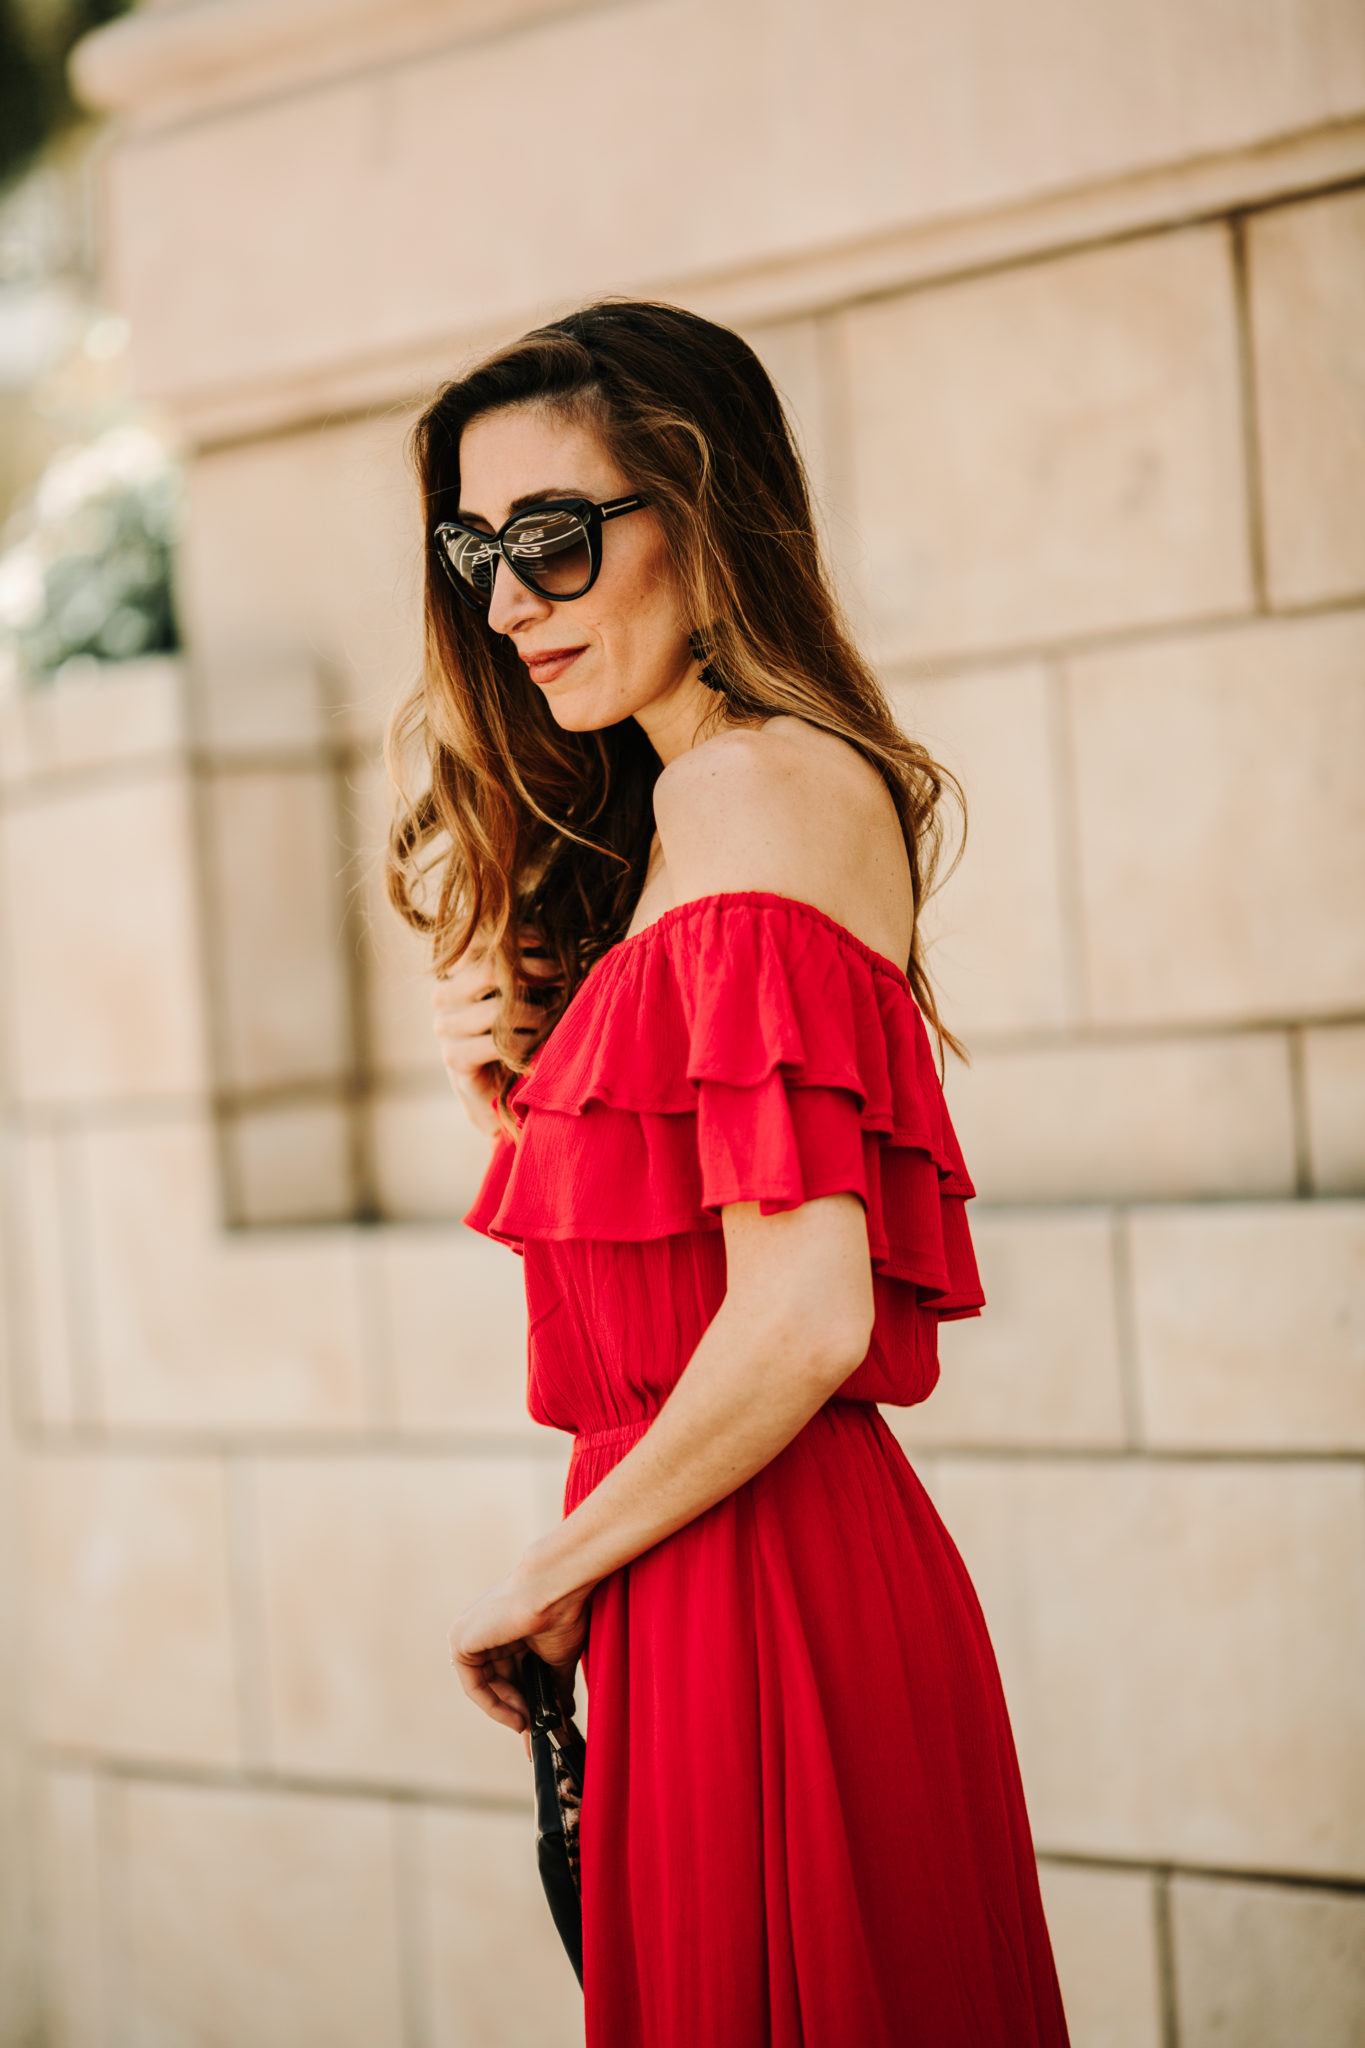 off the shoulder dress and sunglasses